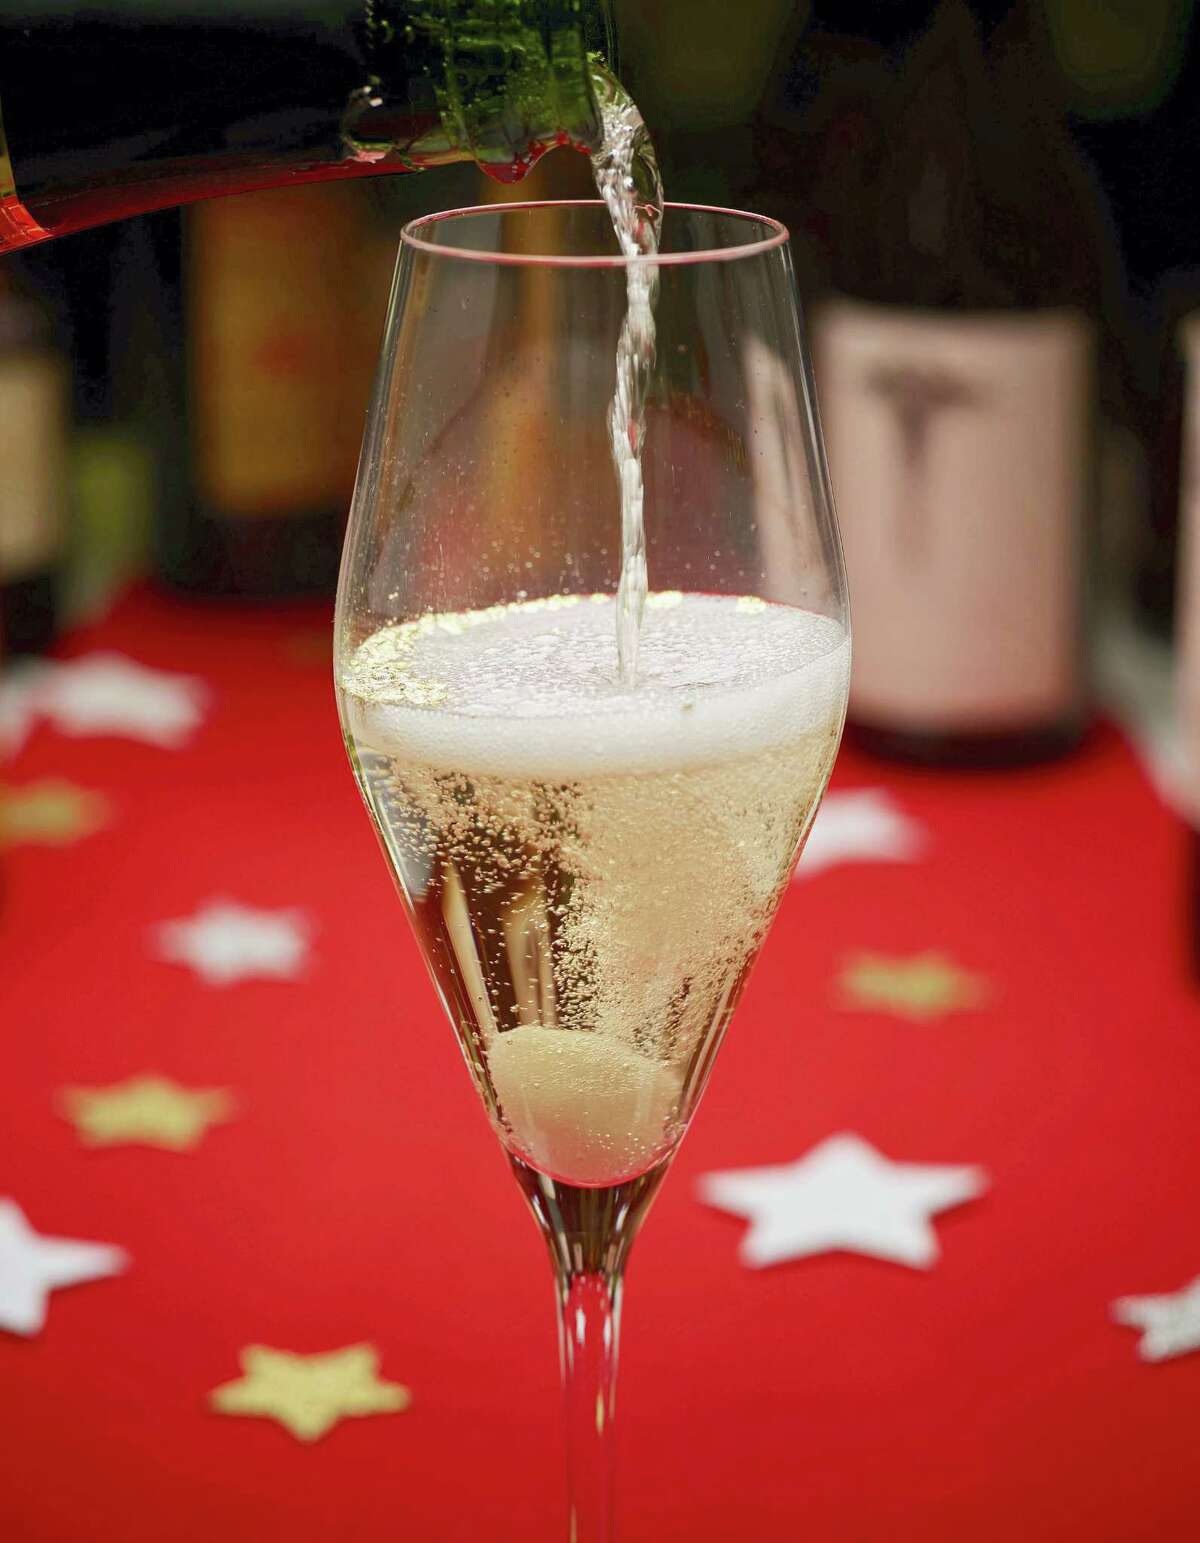 Enjoy a Red Carpet Royal cocktail during the Oscars on Sunday.